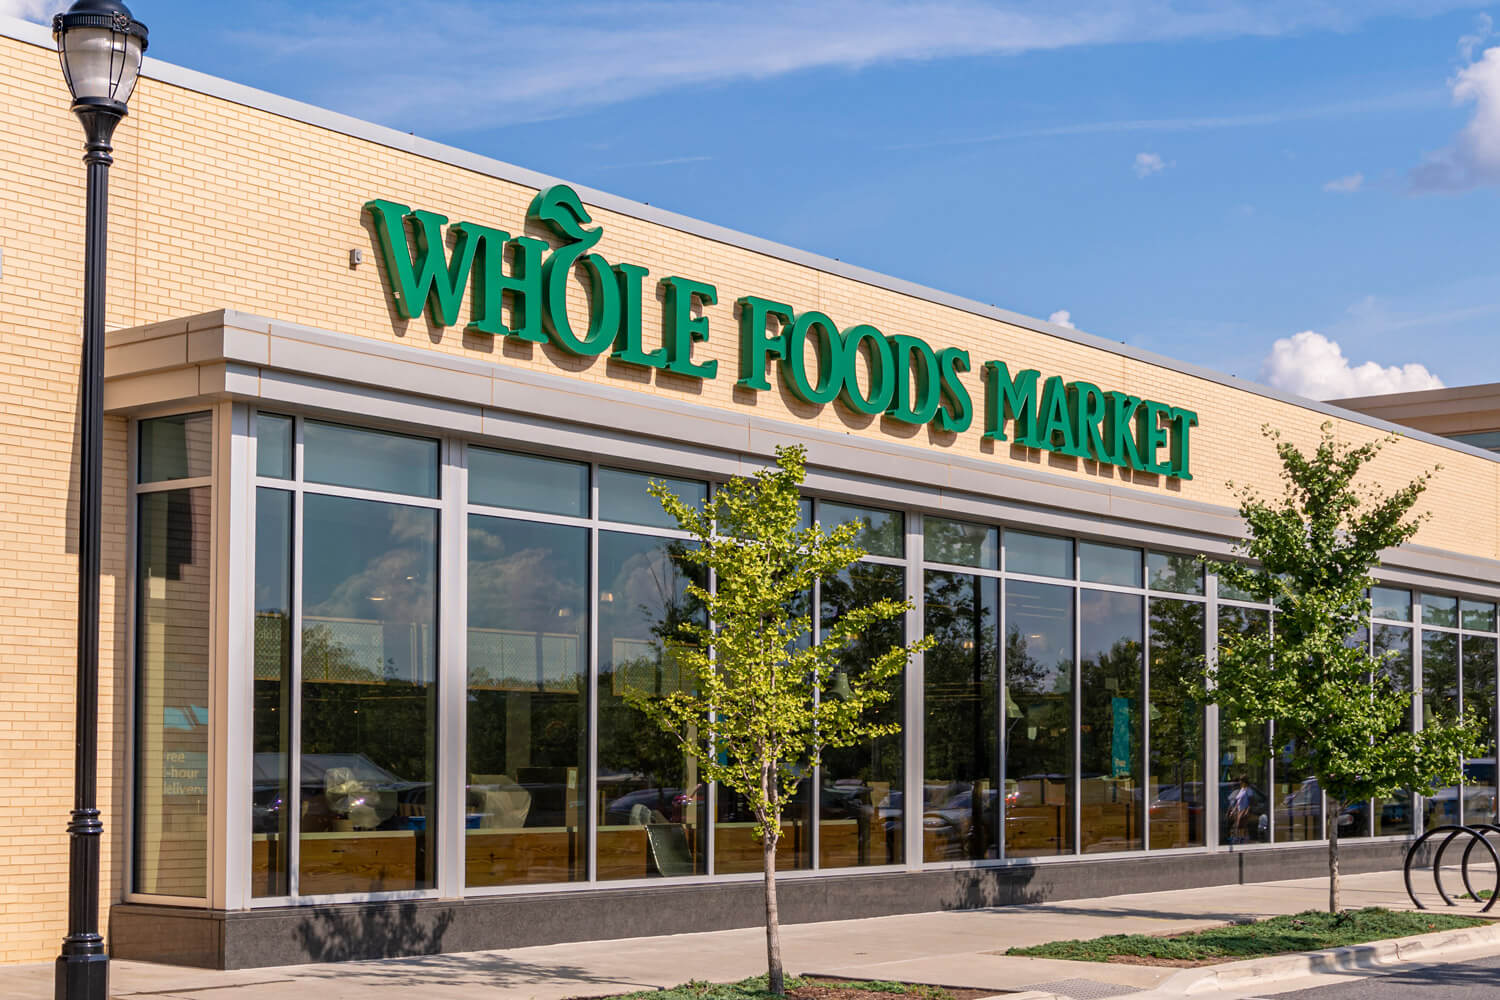 Your groceries are just steps away at Whole Foods Market